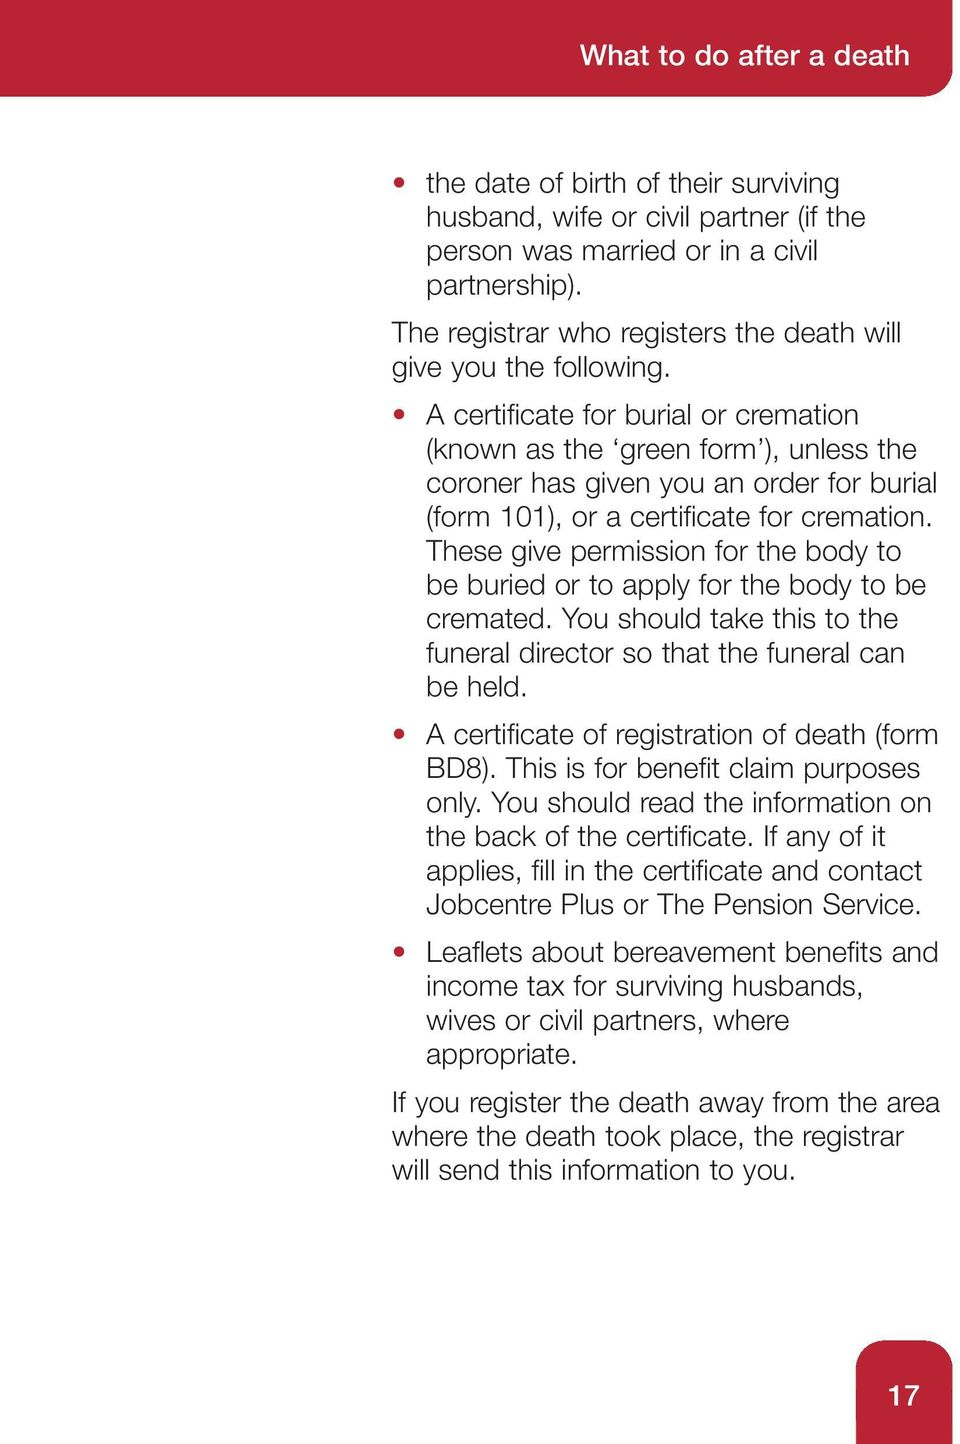 A certificate for burial or cremation (known as the green form ), unless the coroner has given you an order for burial (form 101), or a certificate for cremation.